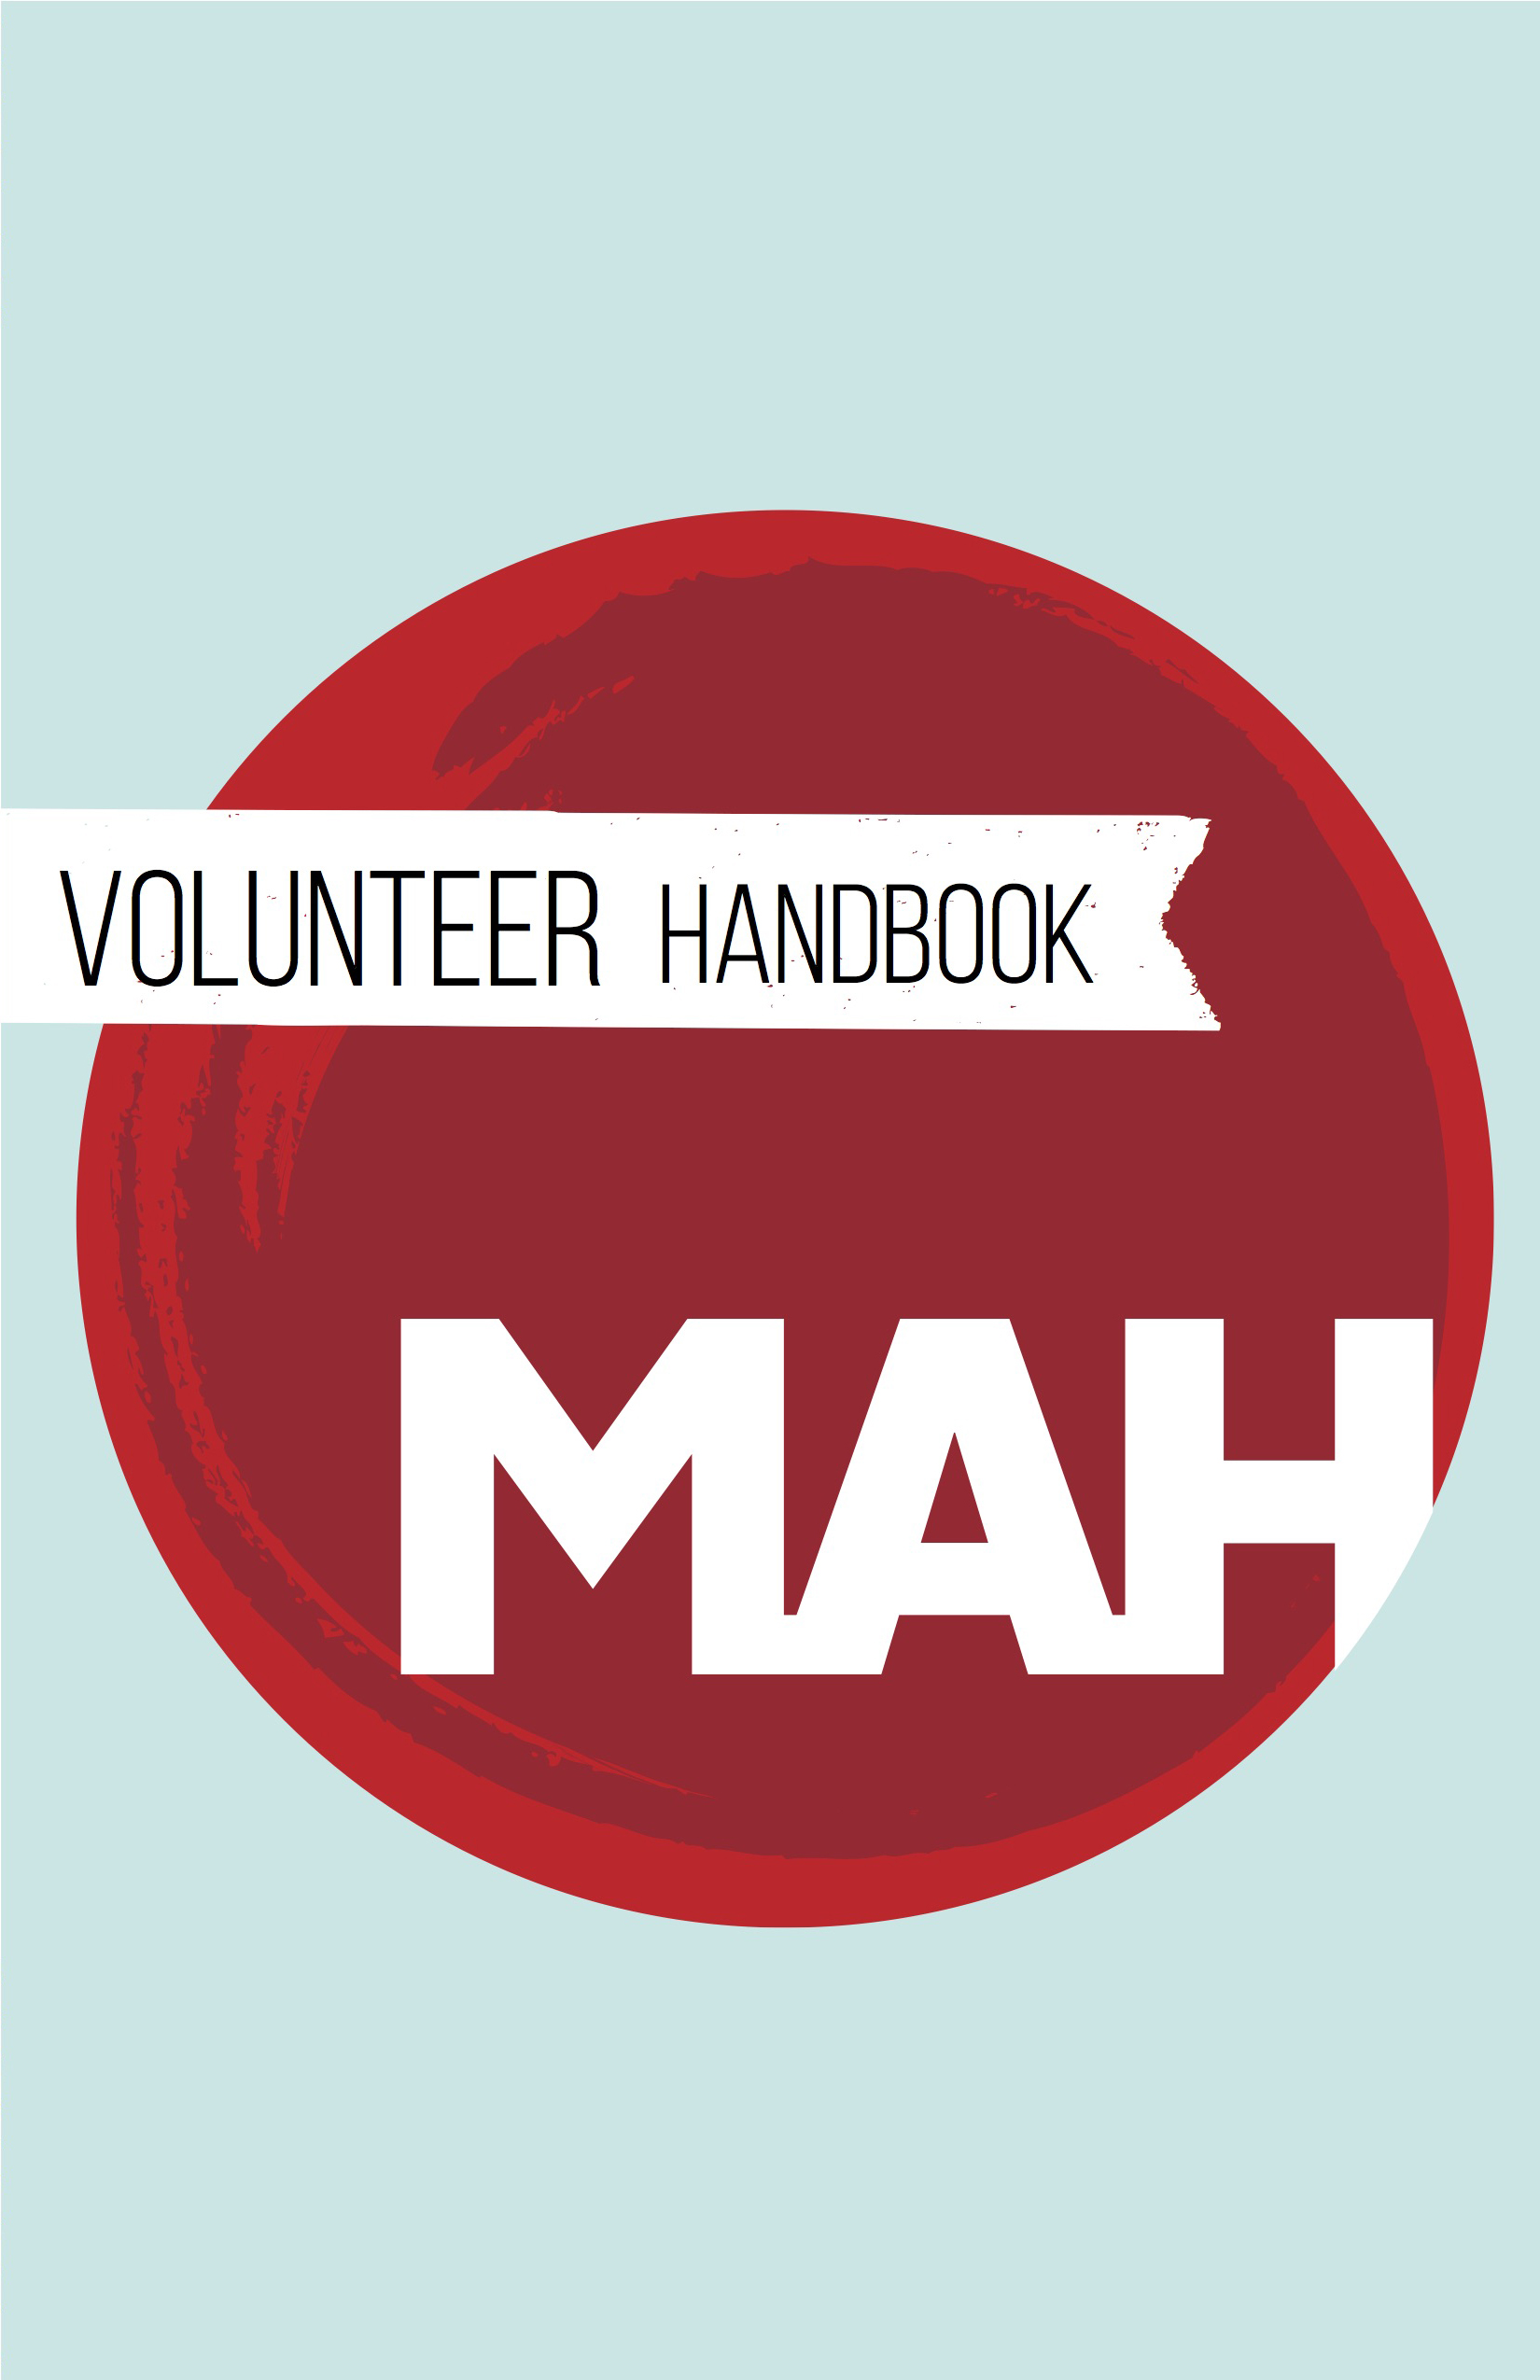 Volunteer Handbook Cover.jpg